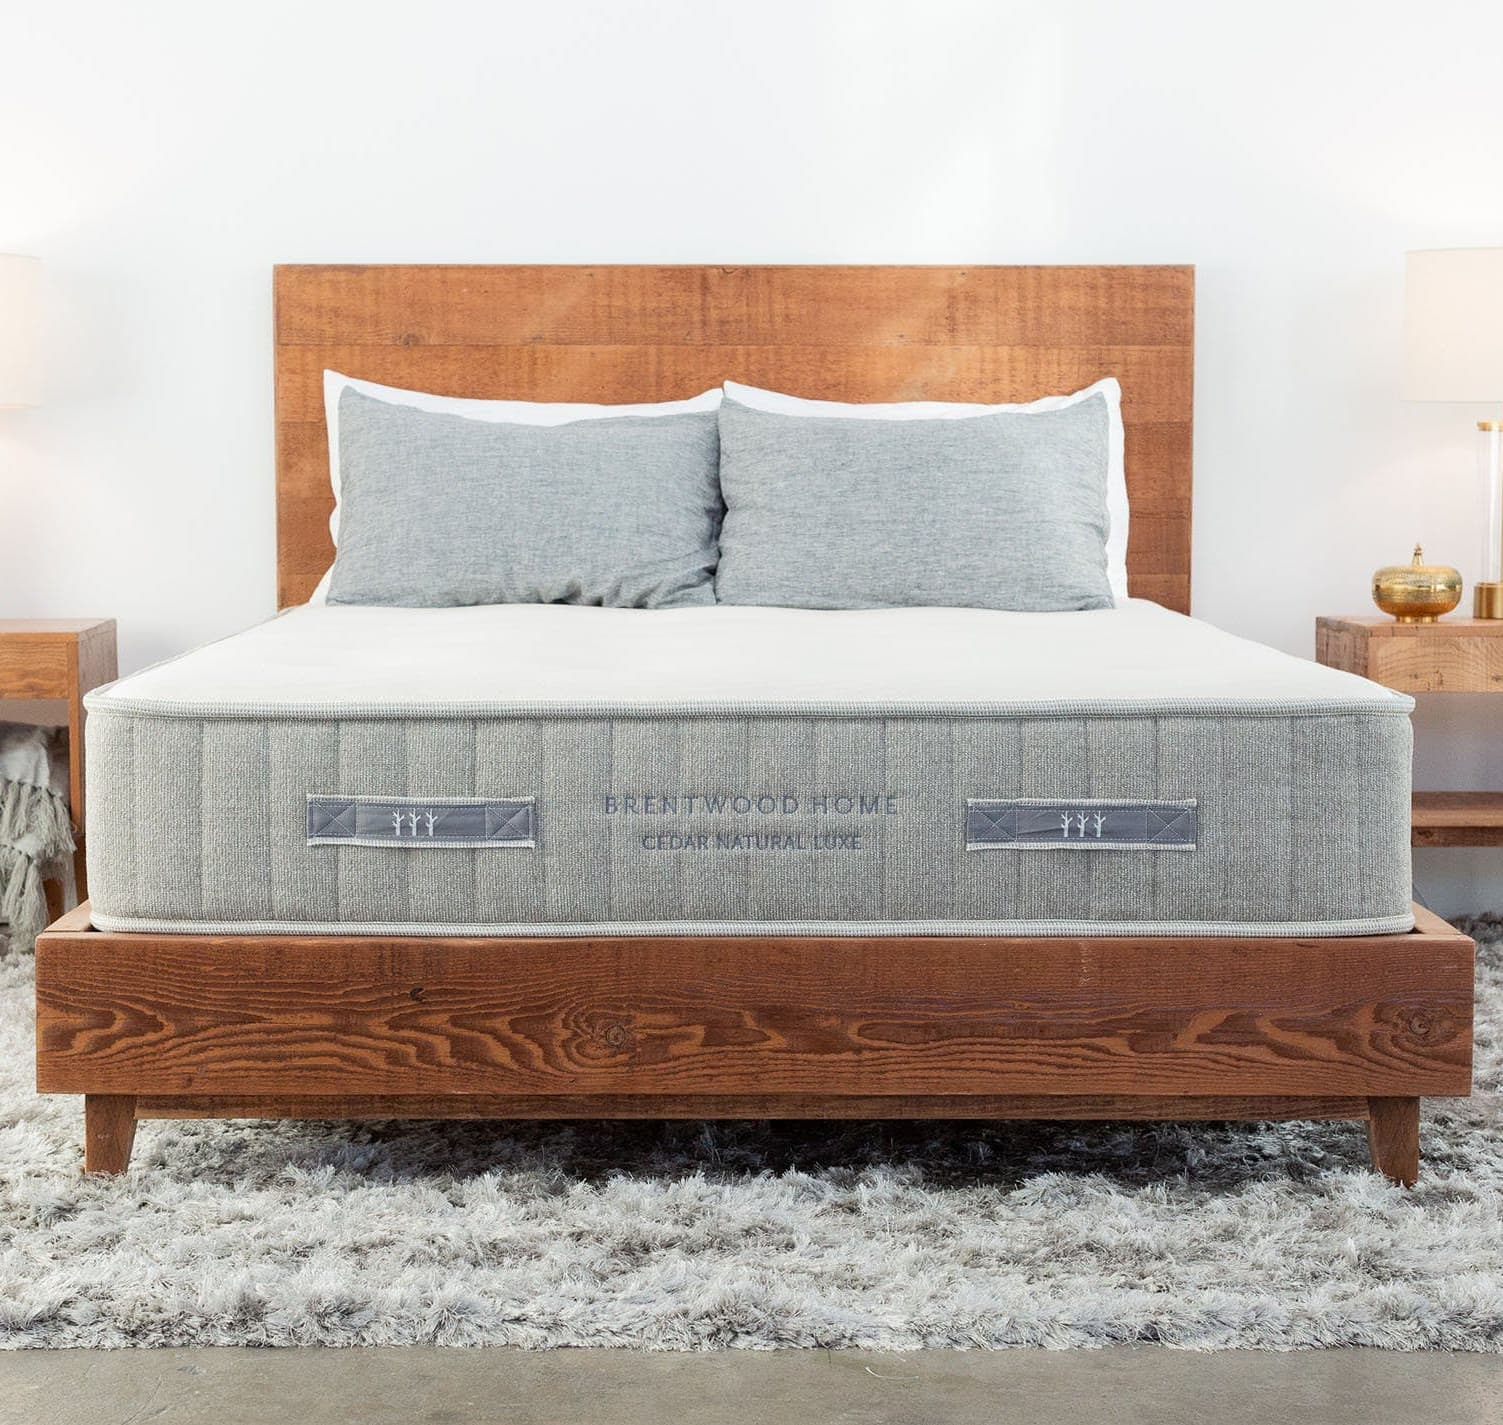 cedar mattress with no topper